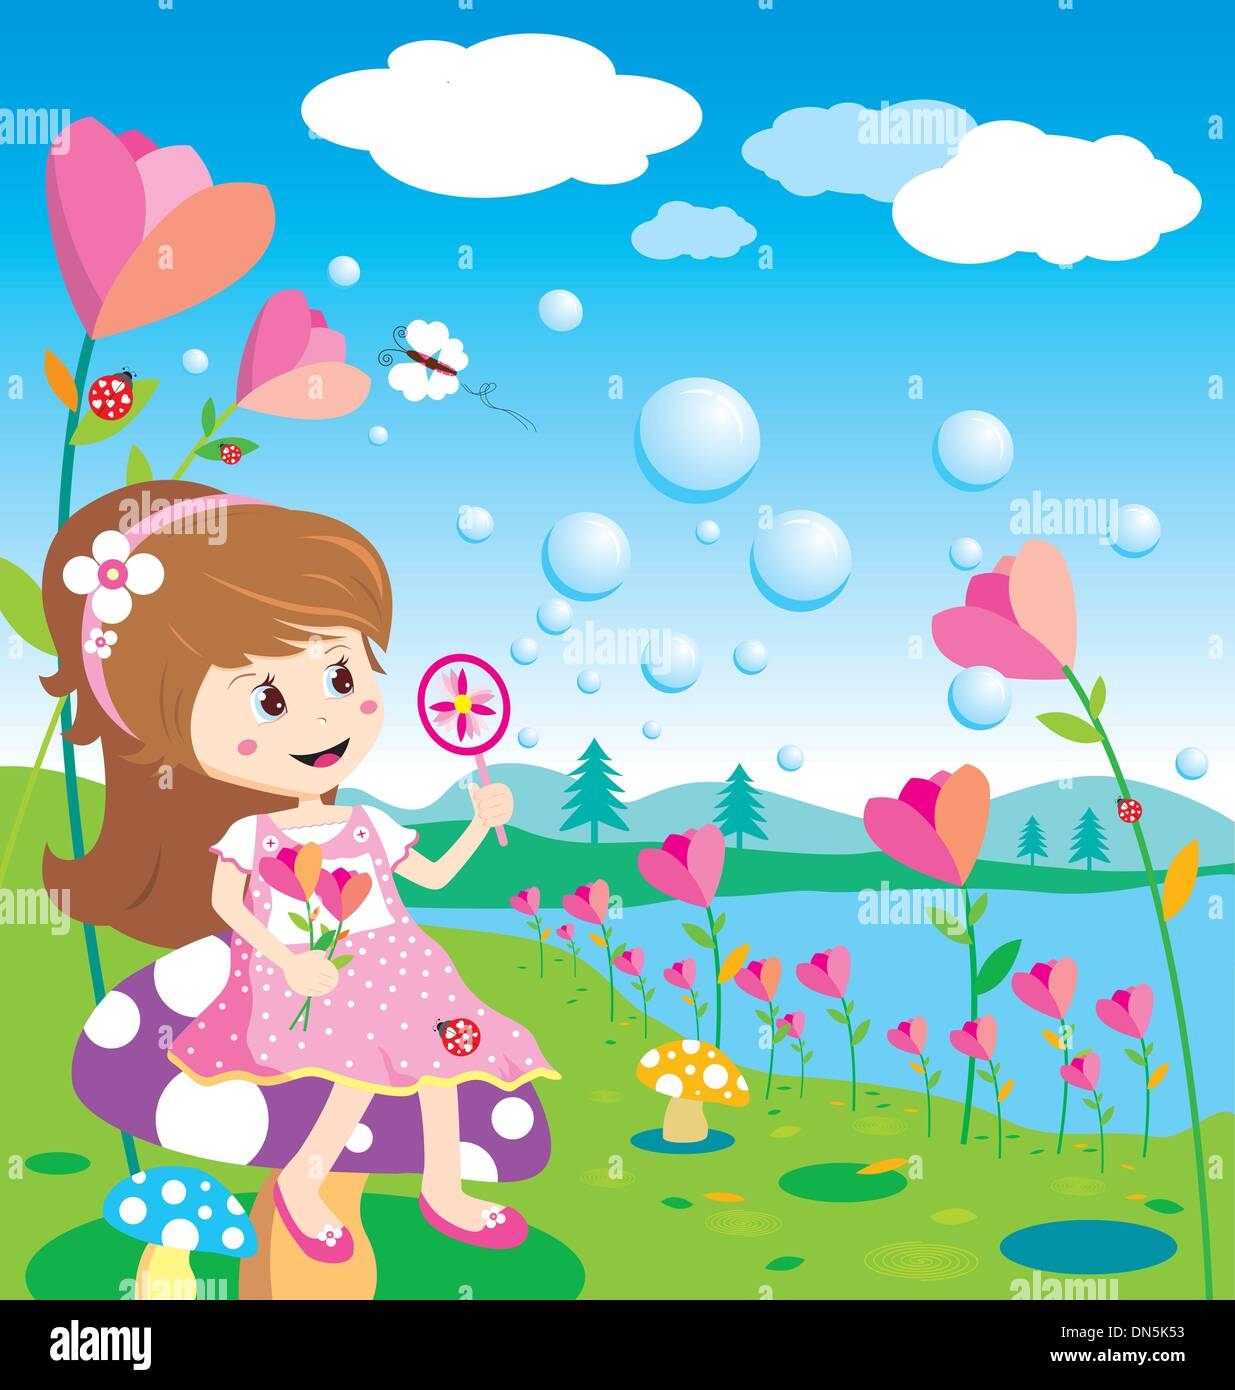 Girl blowing bubbles in the flowers garden - Stock Vector